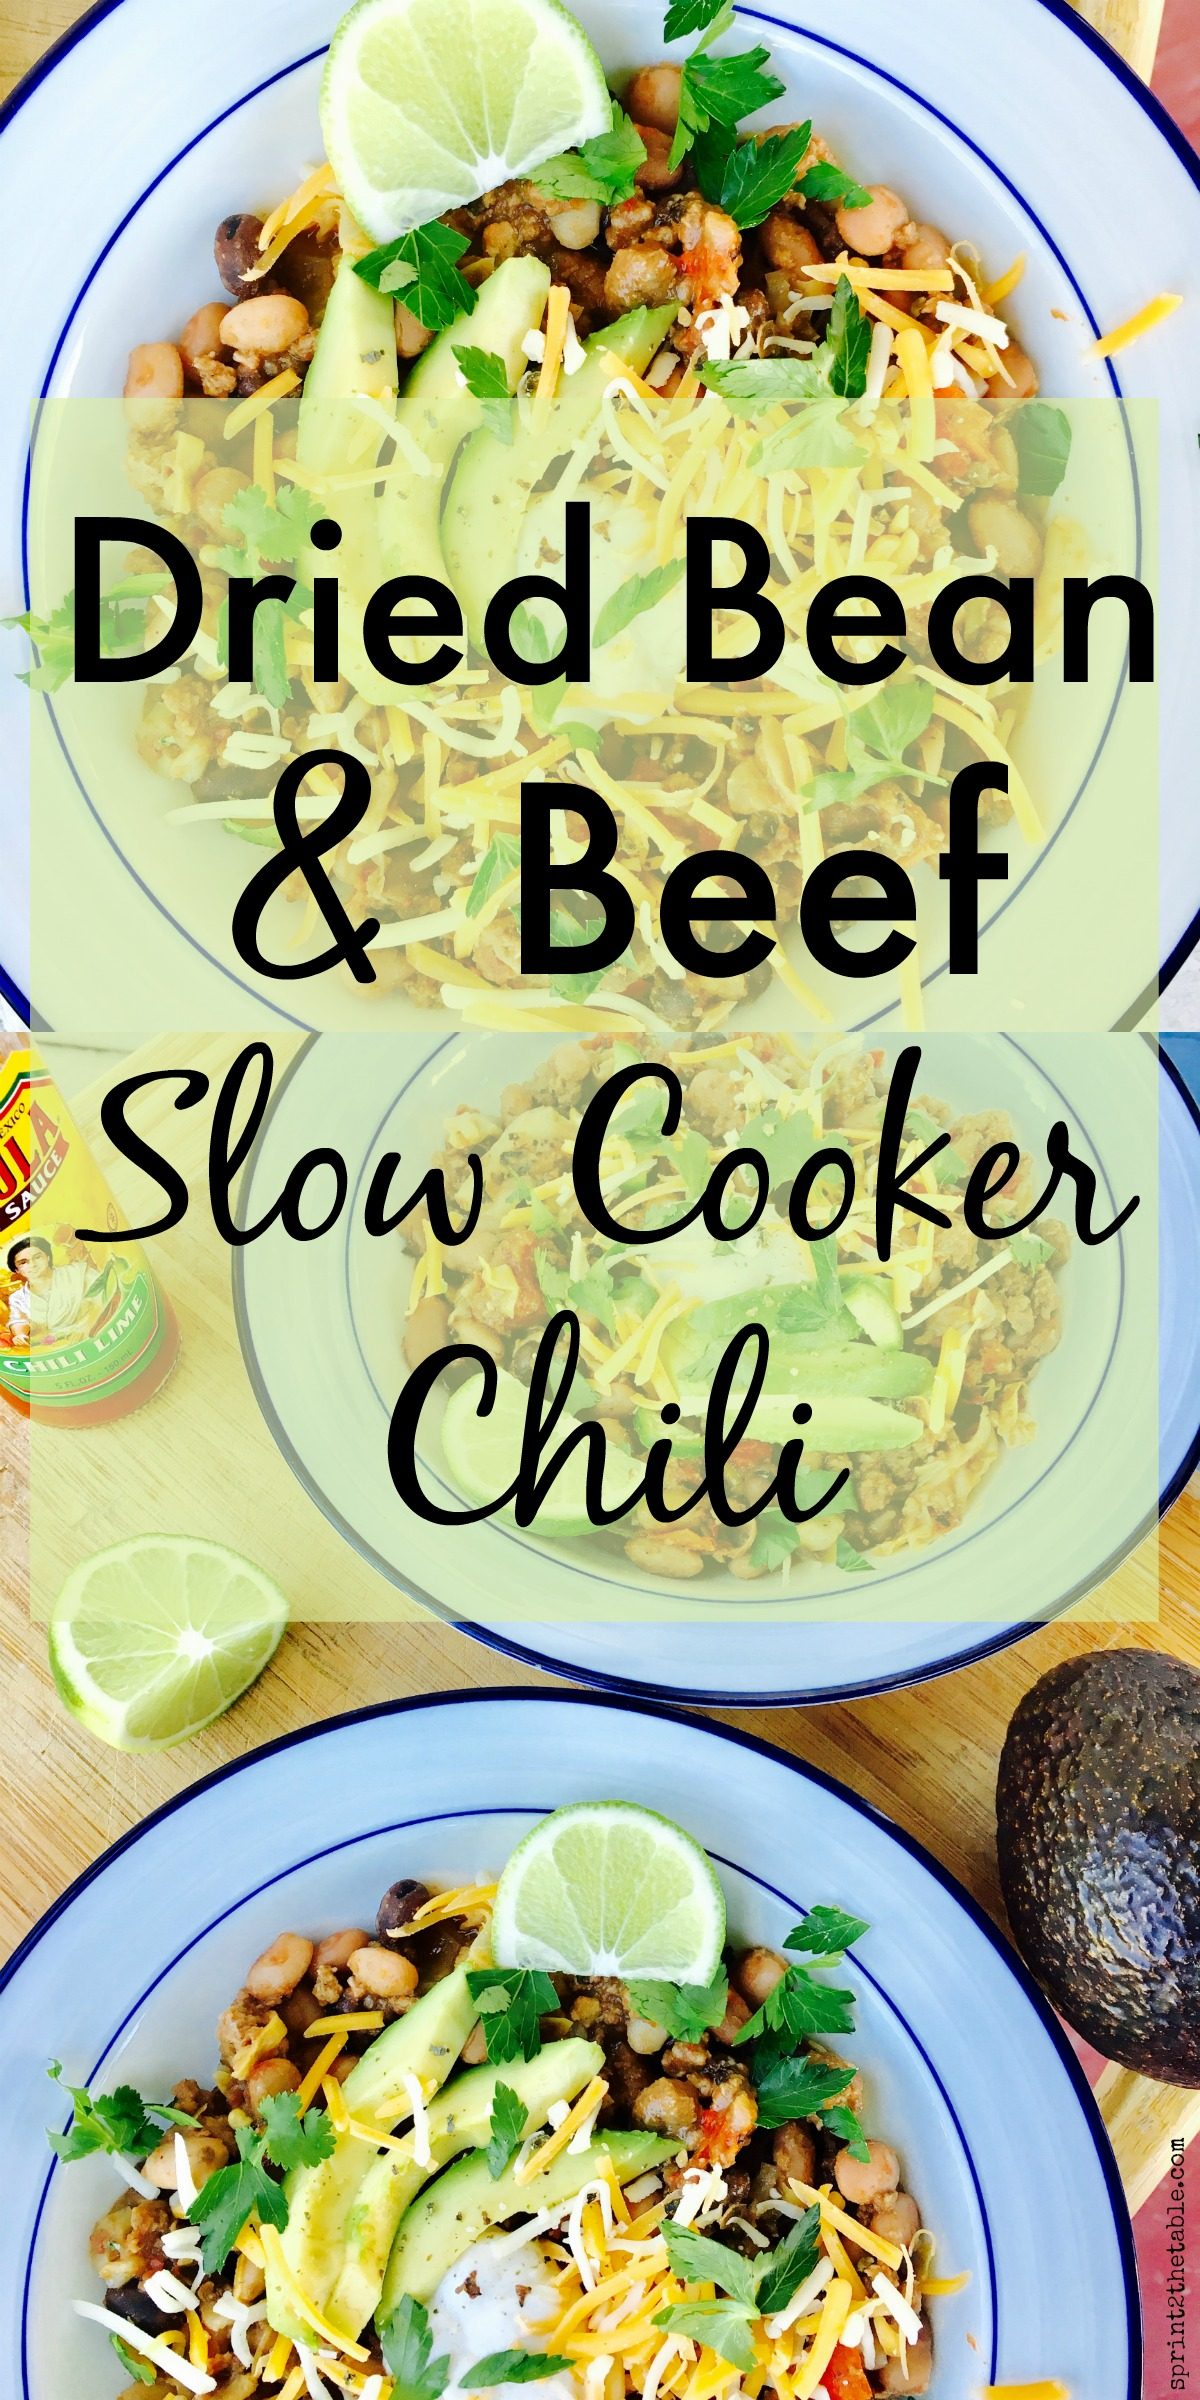 This Dried Bean and Beef Slow Cooker Chili is THE go-to chili recipe in my house.  It's simple and quick to throw together on a busy day!